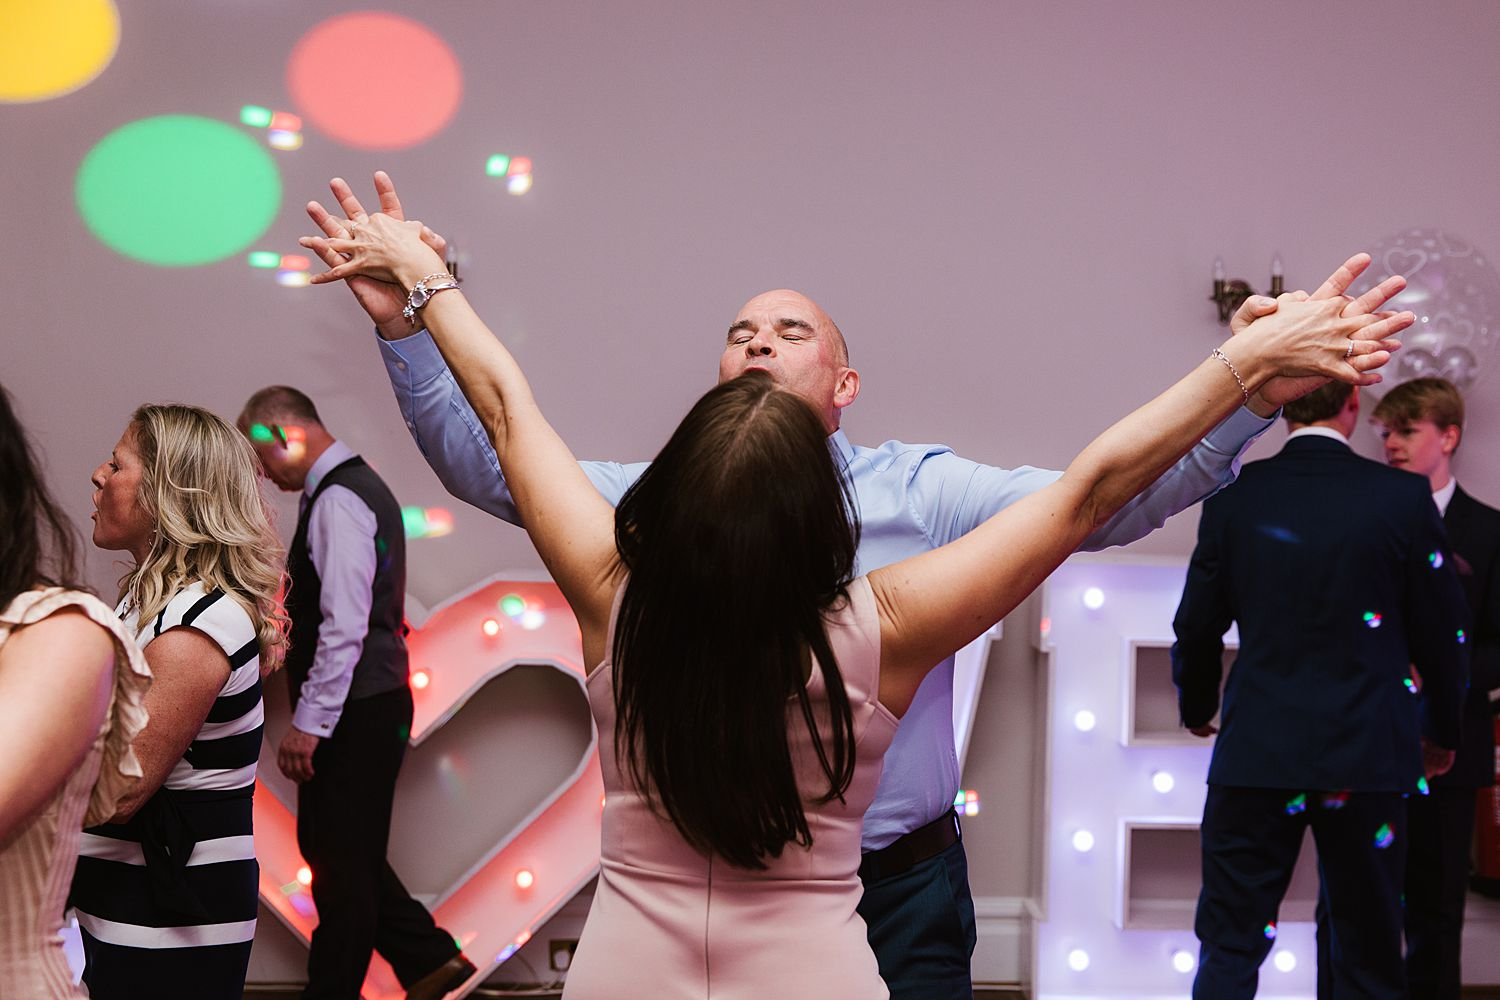 Groom dancing with guest at Storrs Hall Hotel wedding, Bowness on Windermere